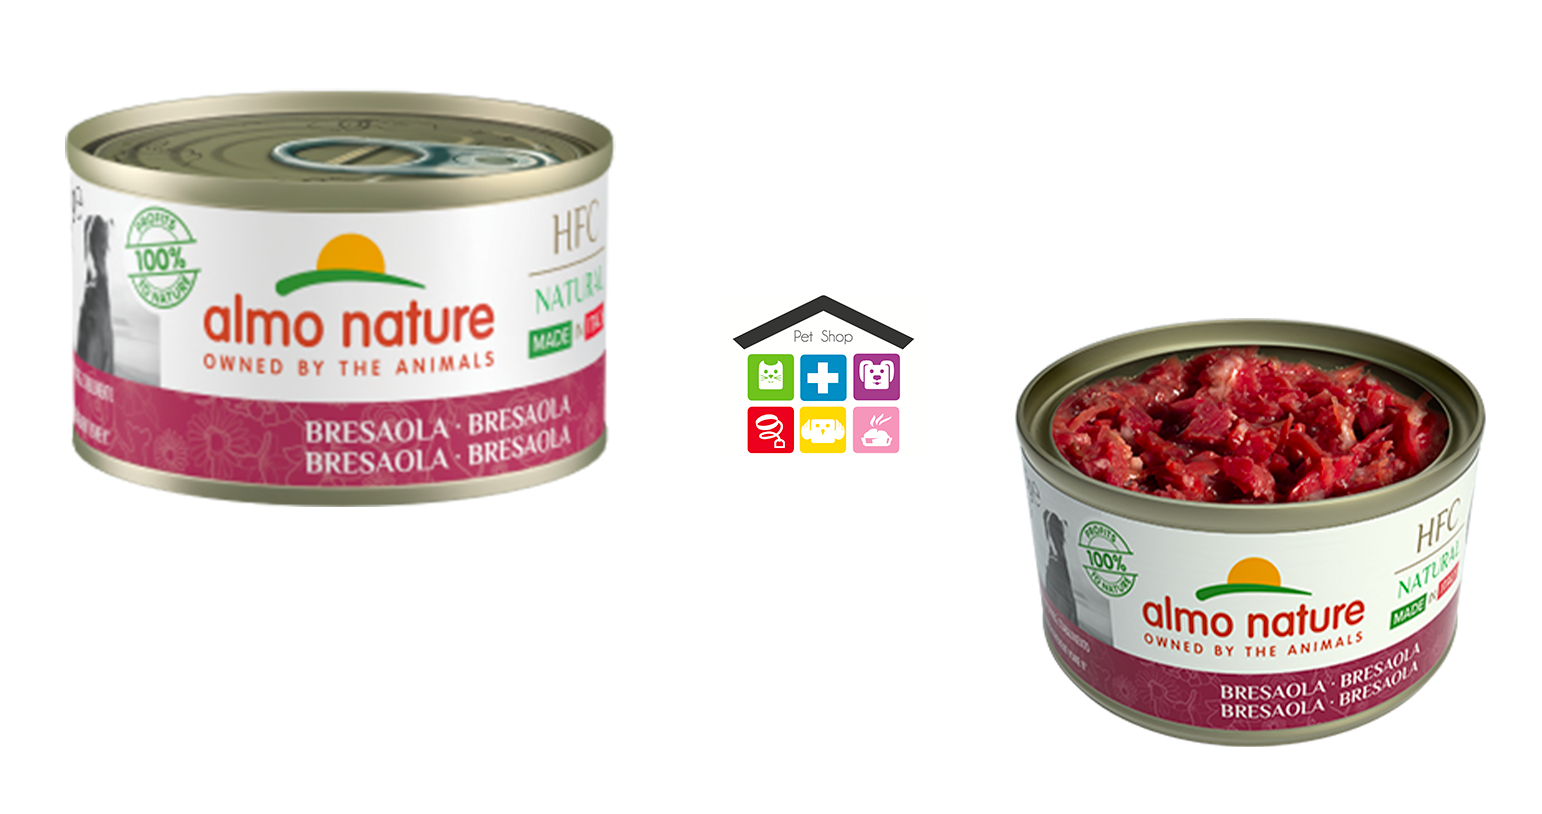 Almo nature dog HFC Natural Made in Italy Bresaola 0,95g